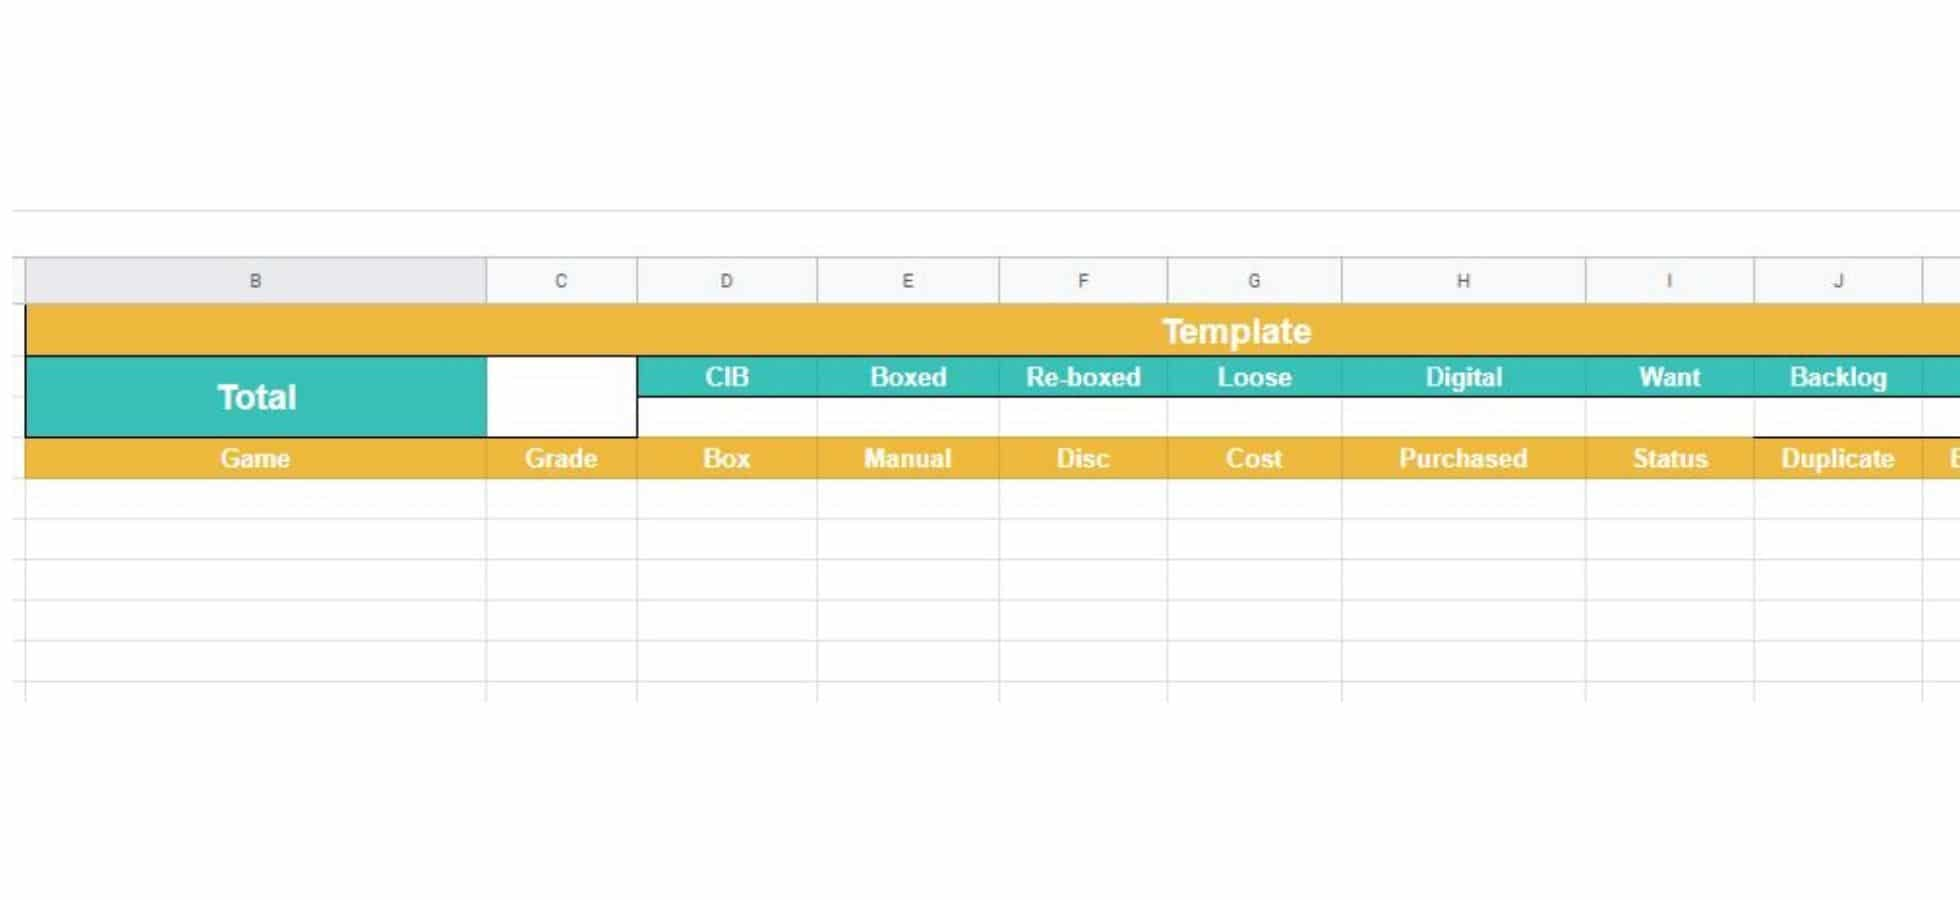 Building Your Sheet - Template Tab Structure